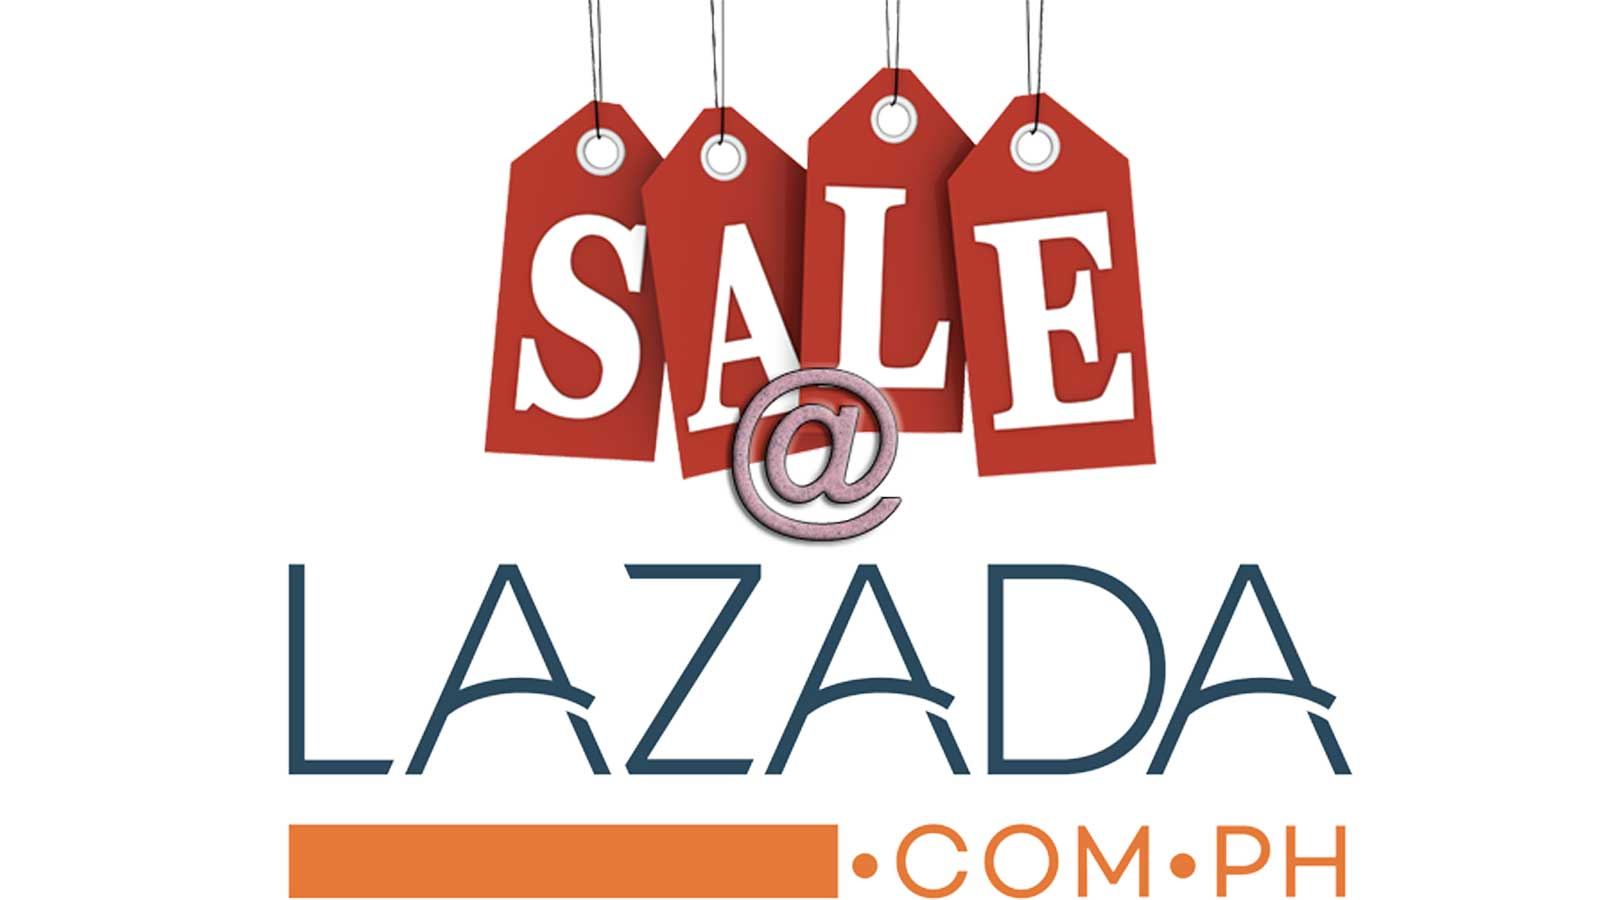 Early bird shopping at Lazada